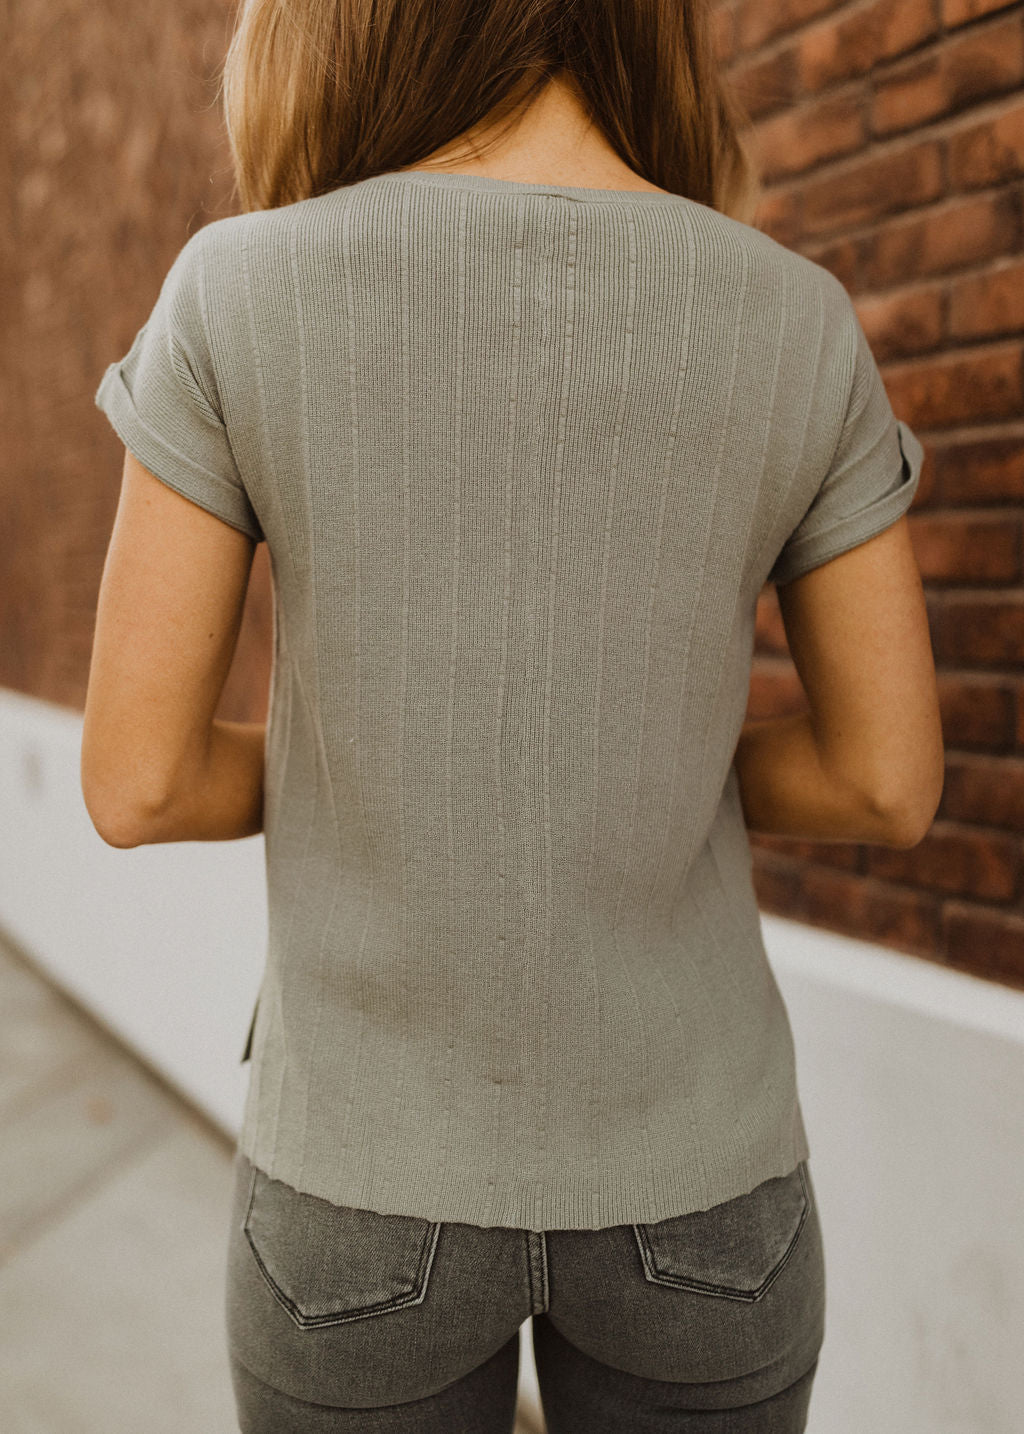 THE STASIA SHORT SLEEVE SWEATER IN SAGE